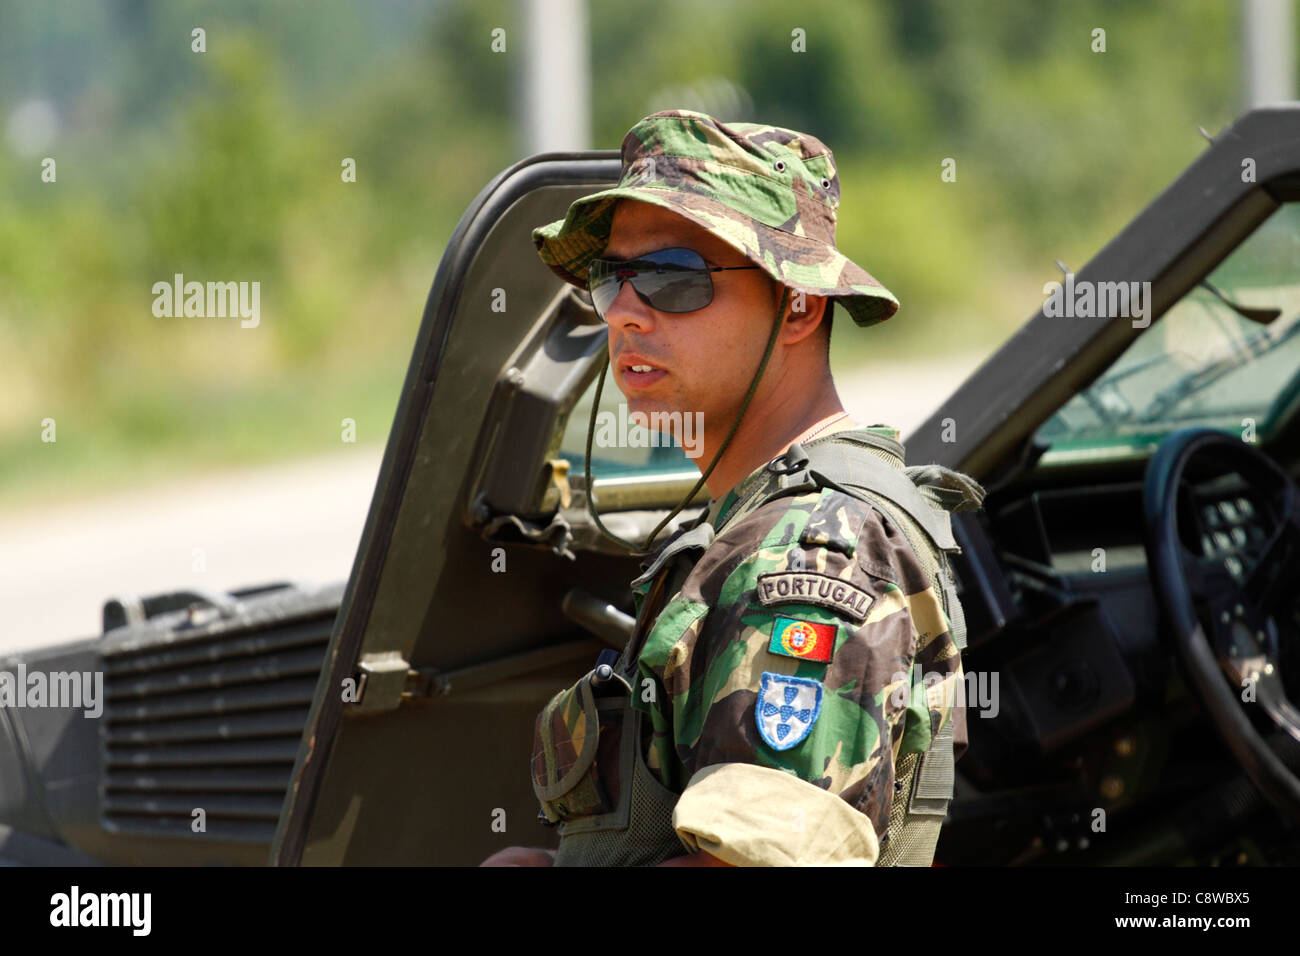 Portuguese KFOR soldier in standing by his armored car in northern Kosovo - Stock Image